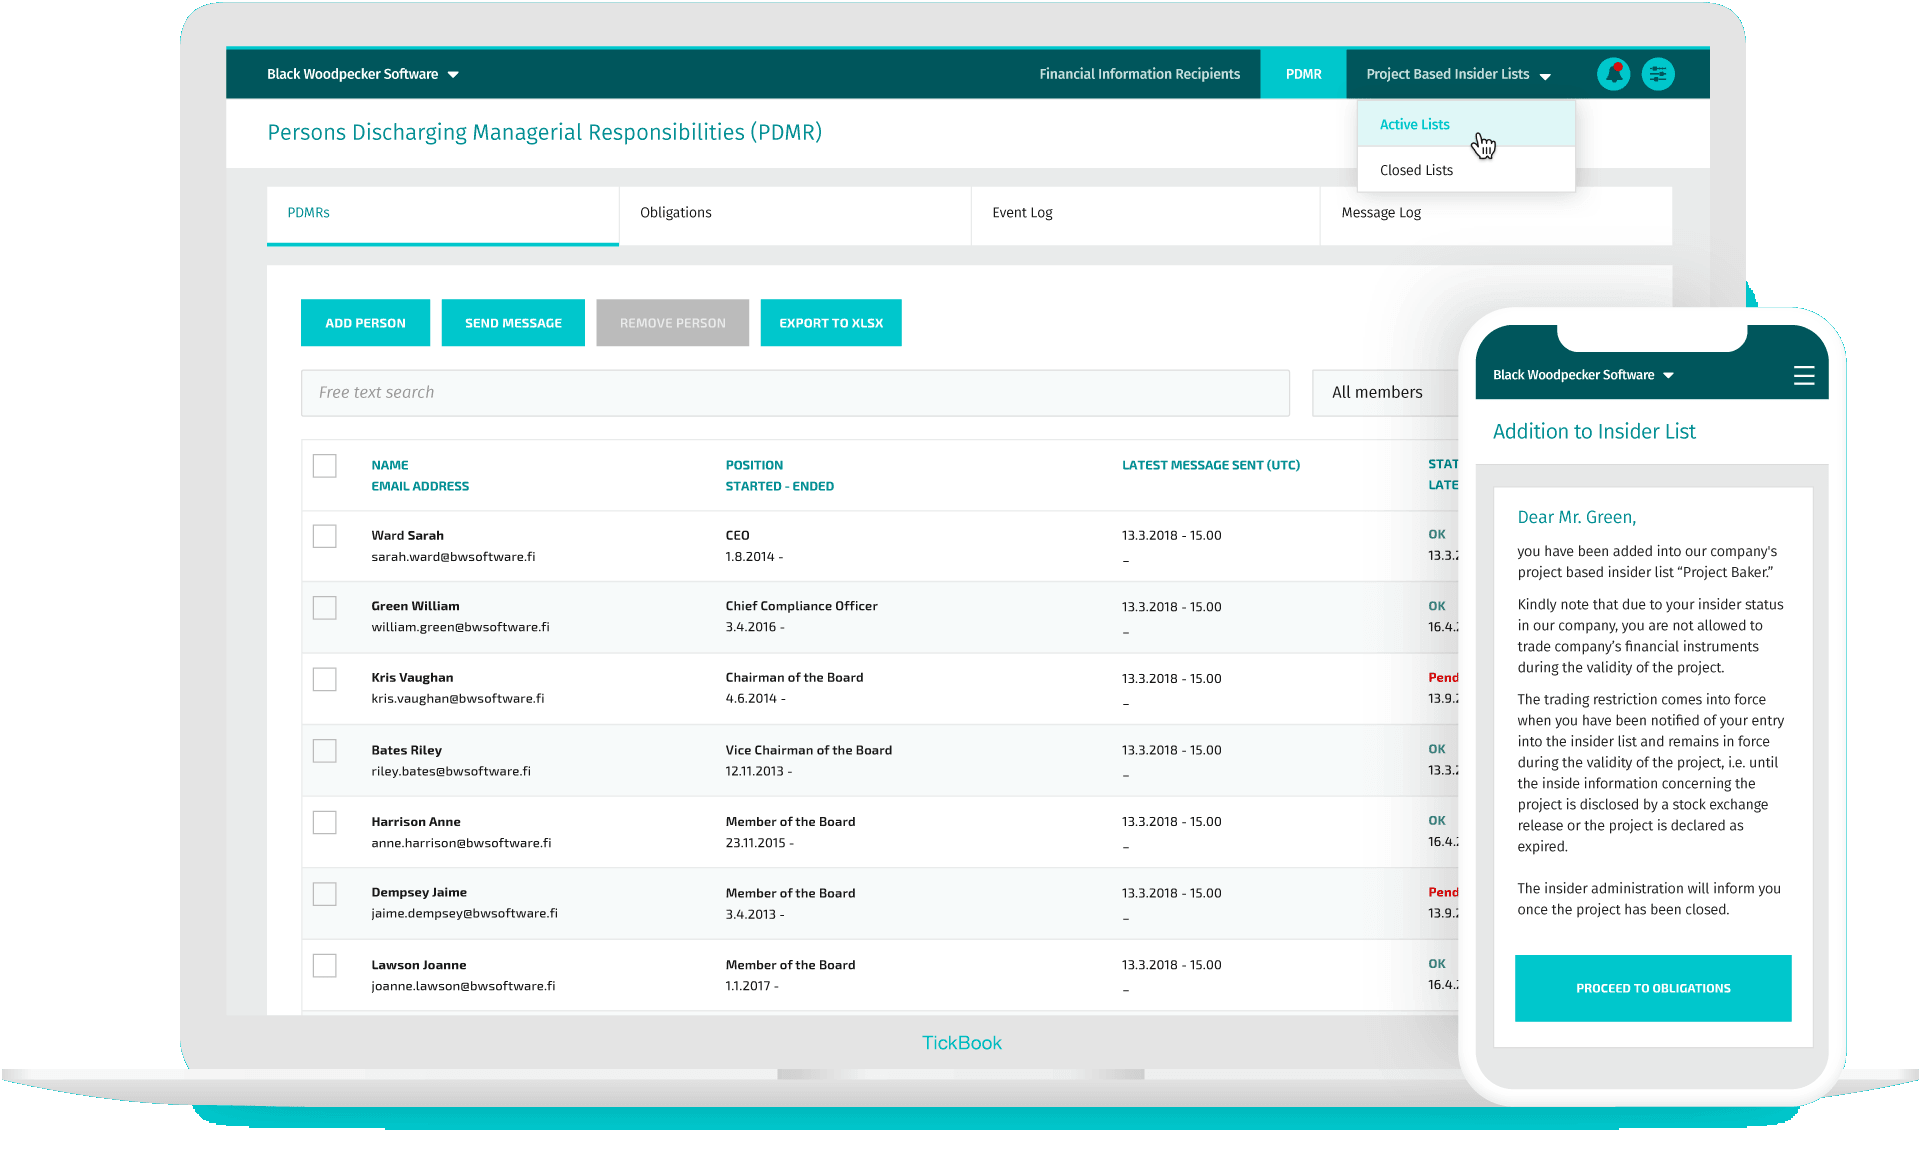 TIcker - Insider List Management